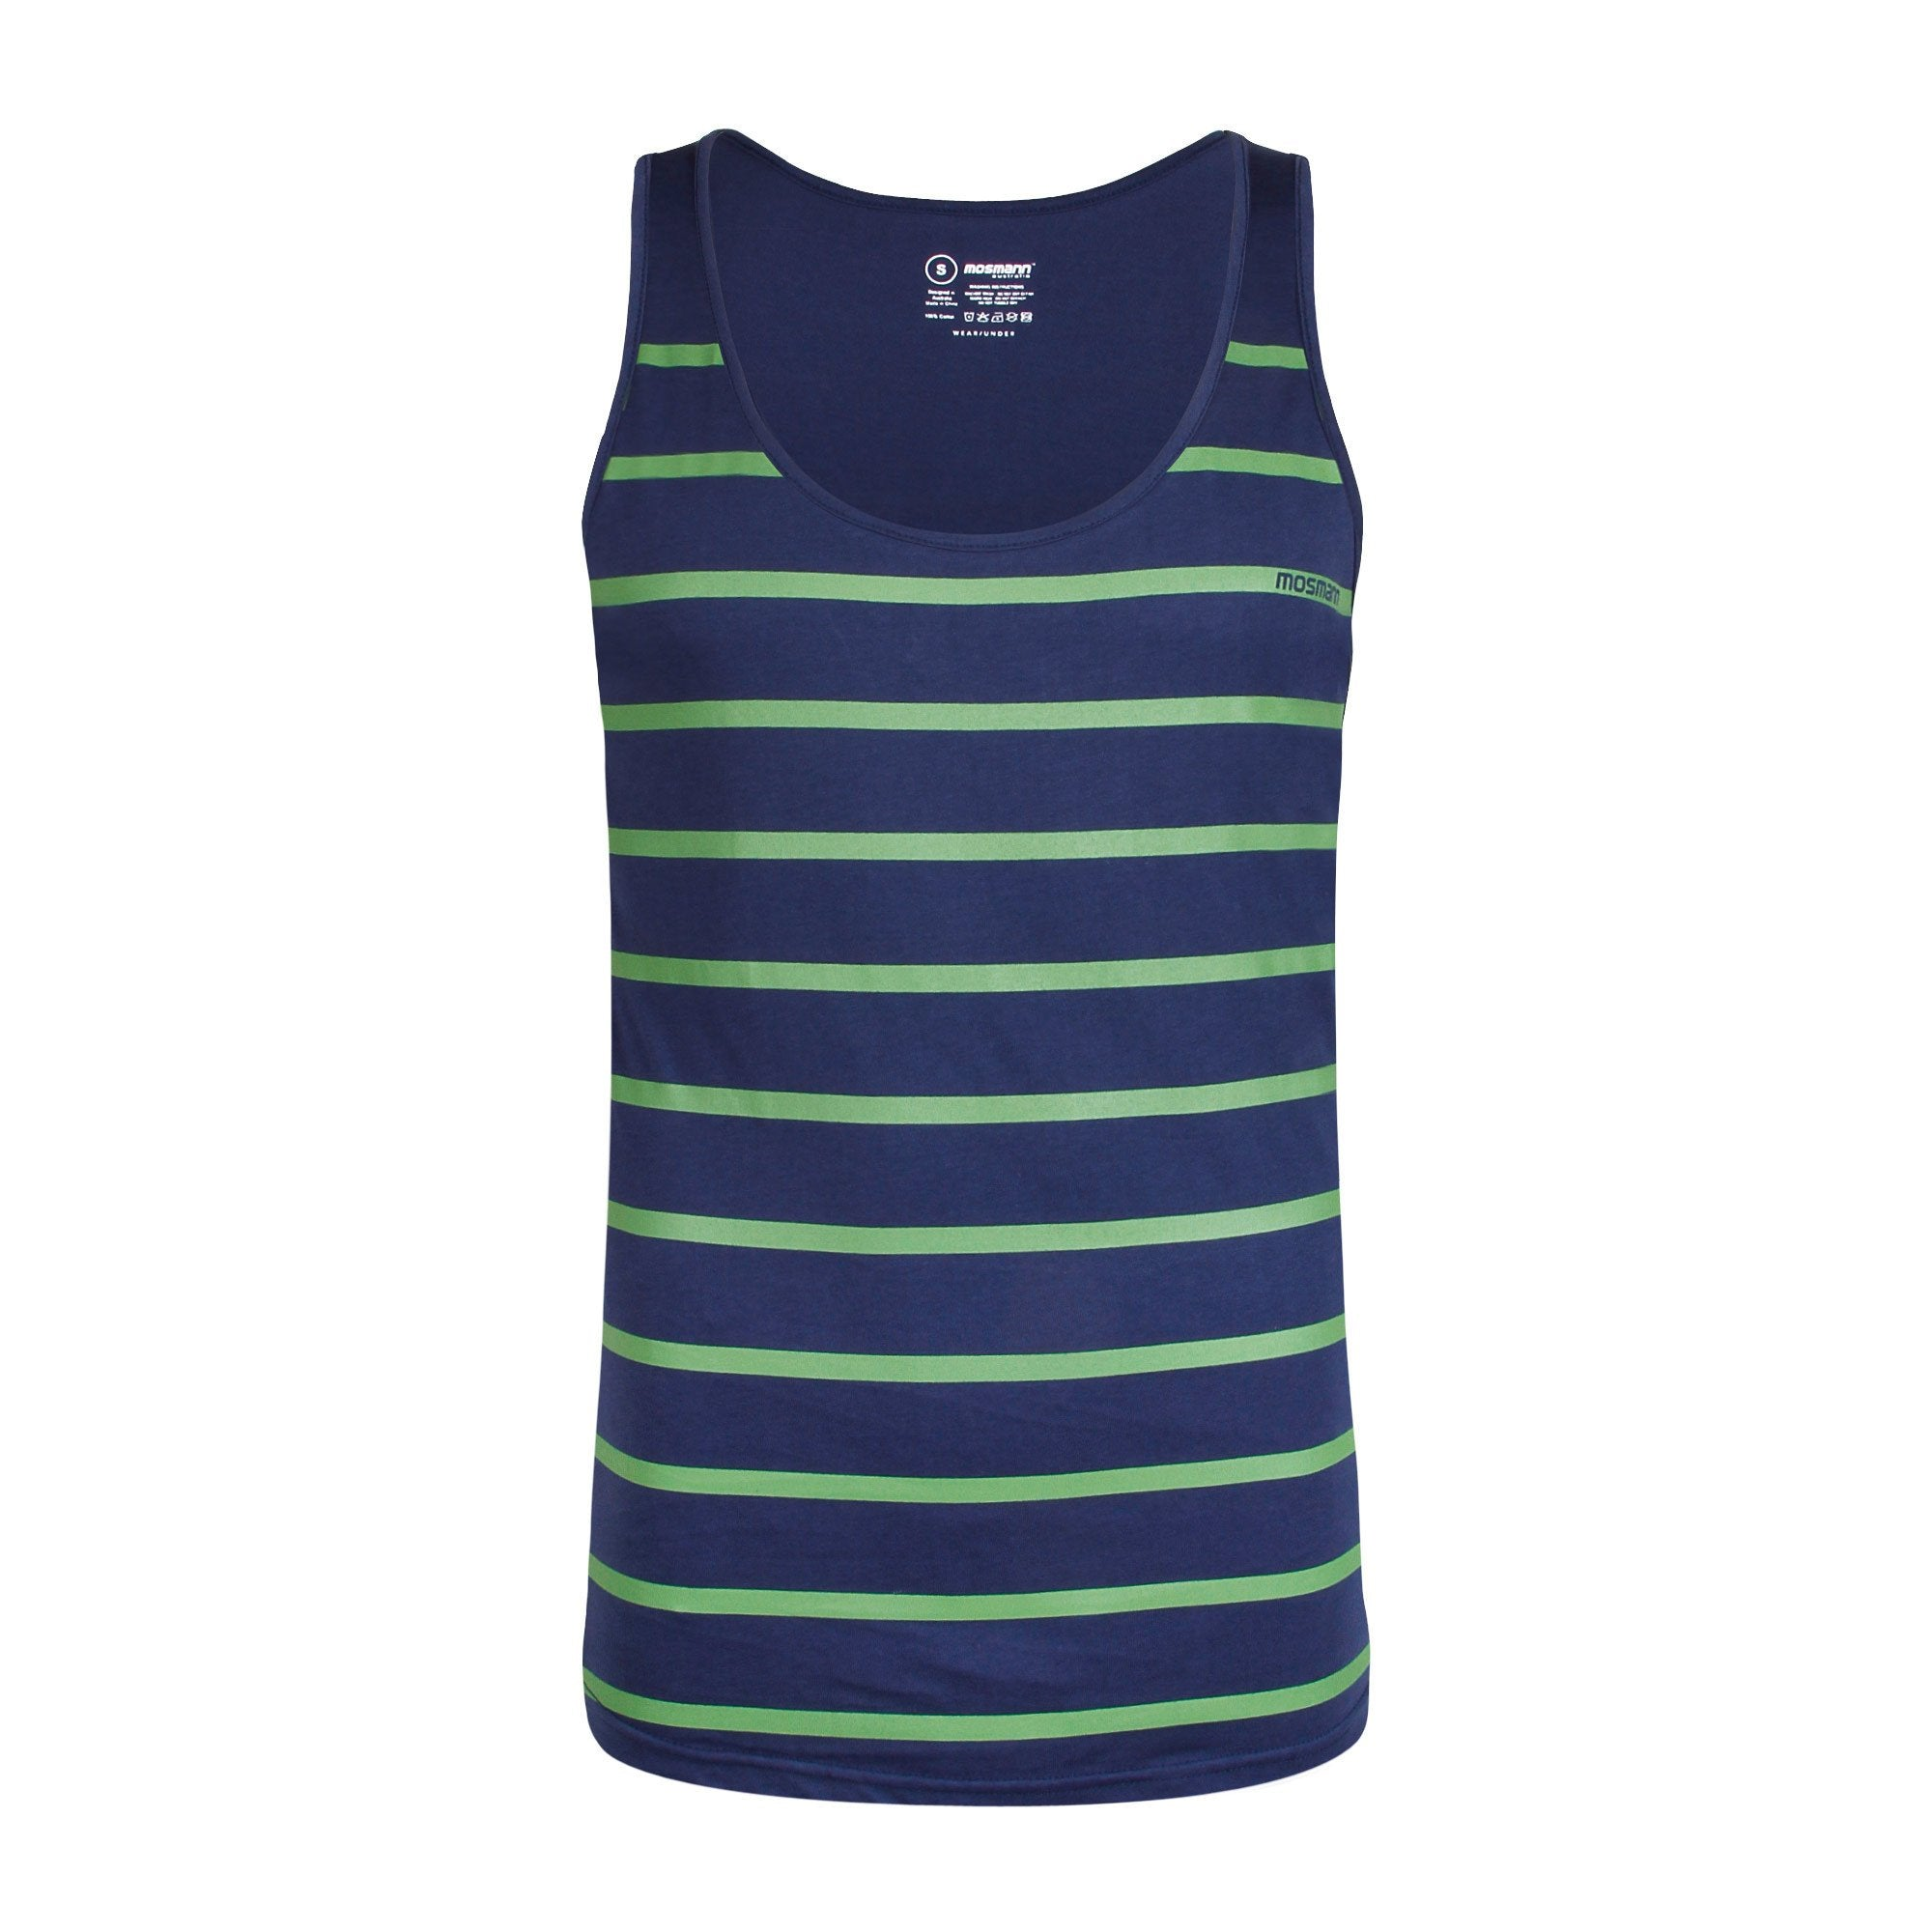 striped_singlet_men_s_wear_f07c33dc-4588-4926-9086-21fb8464070f.jpg